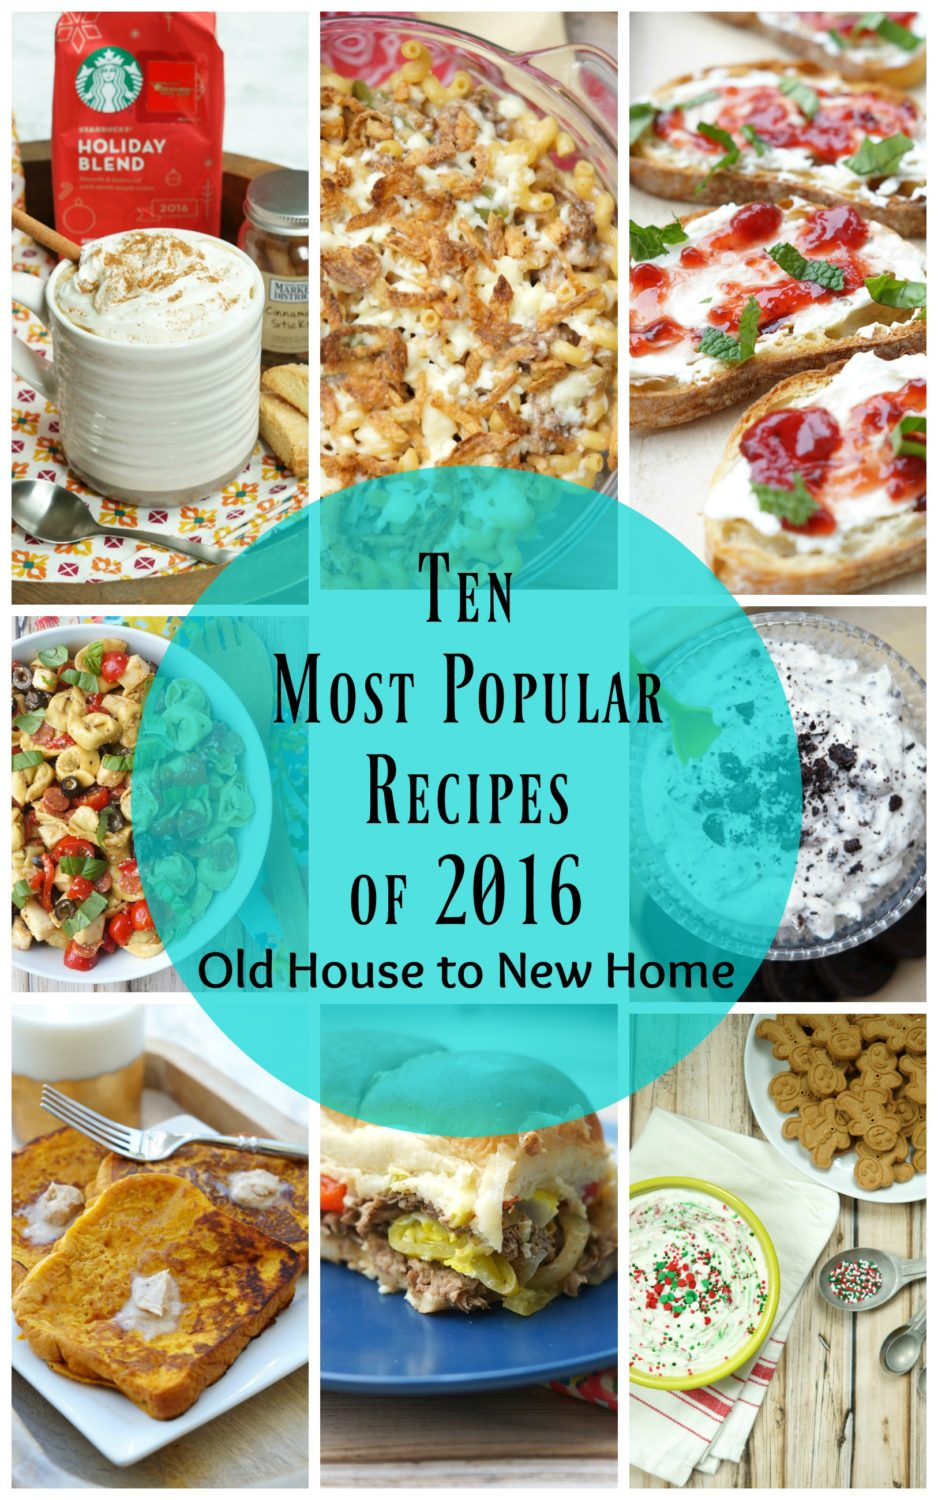 Old House to New Home's 10 Best Recipes of 2016!